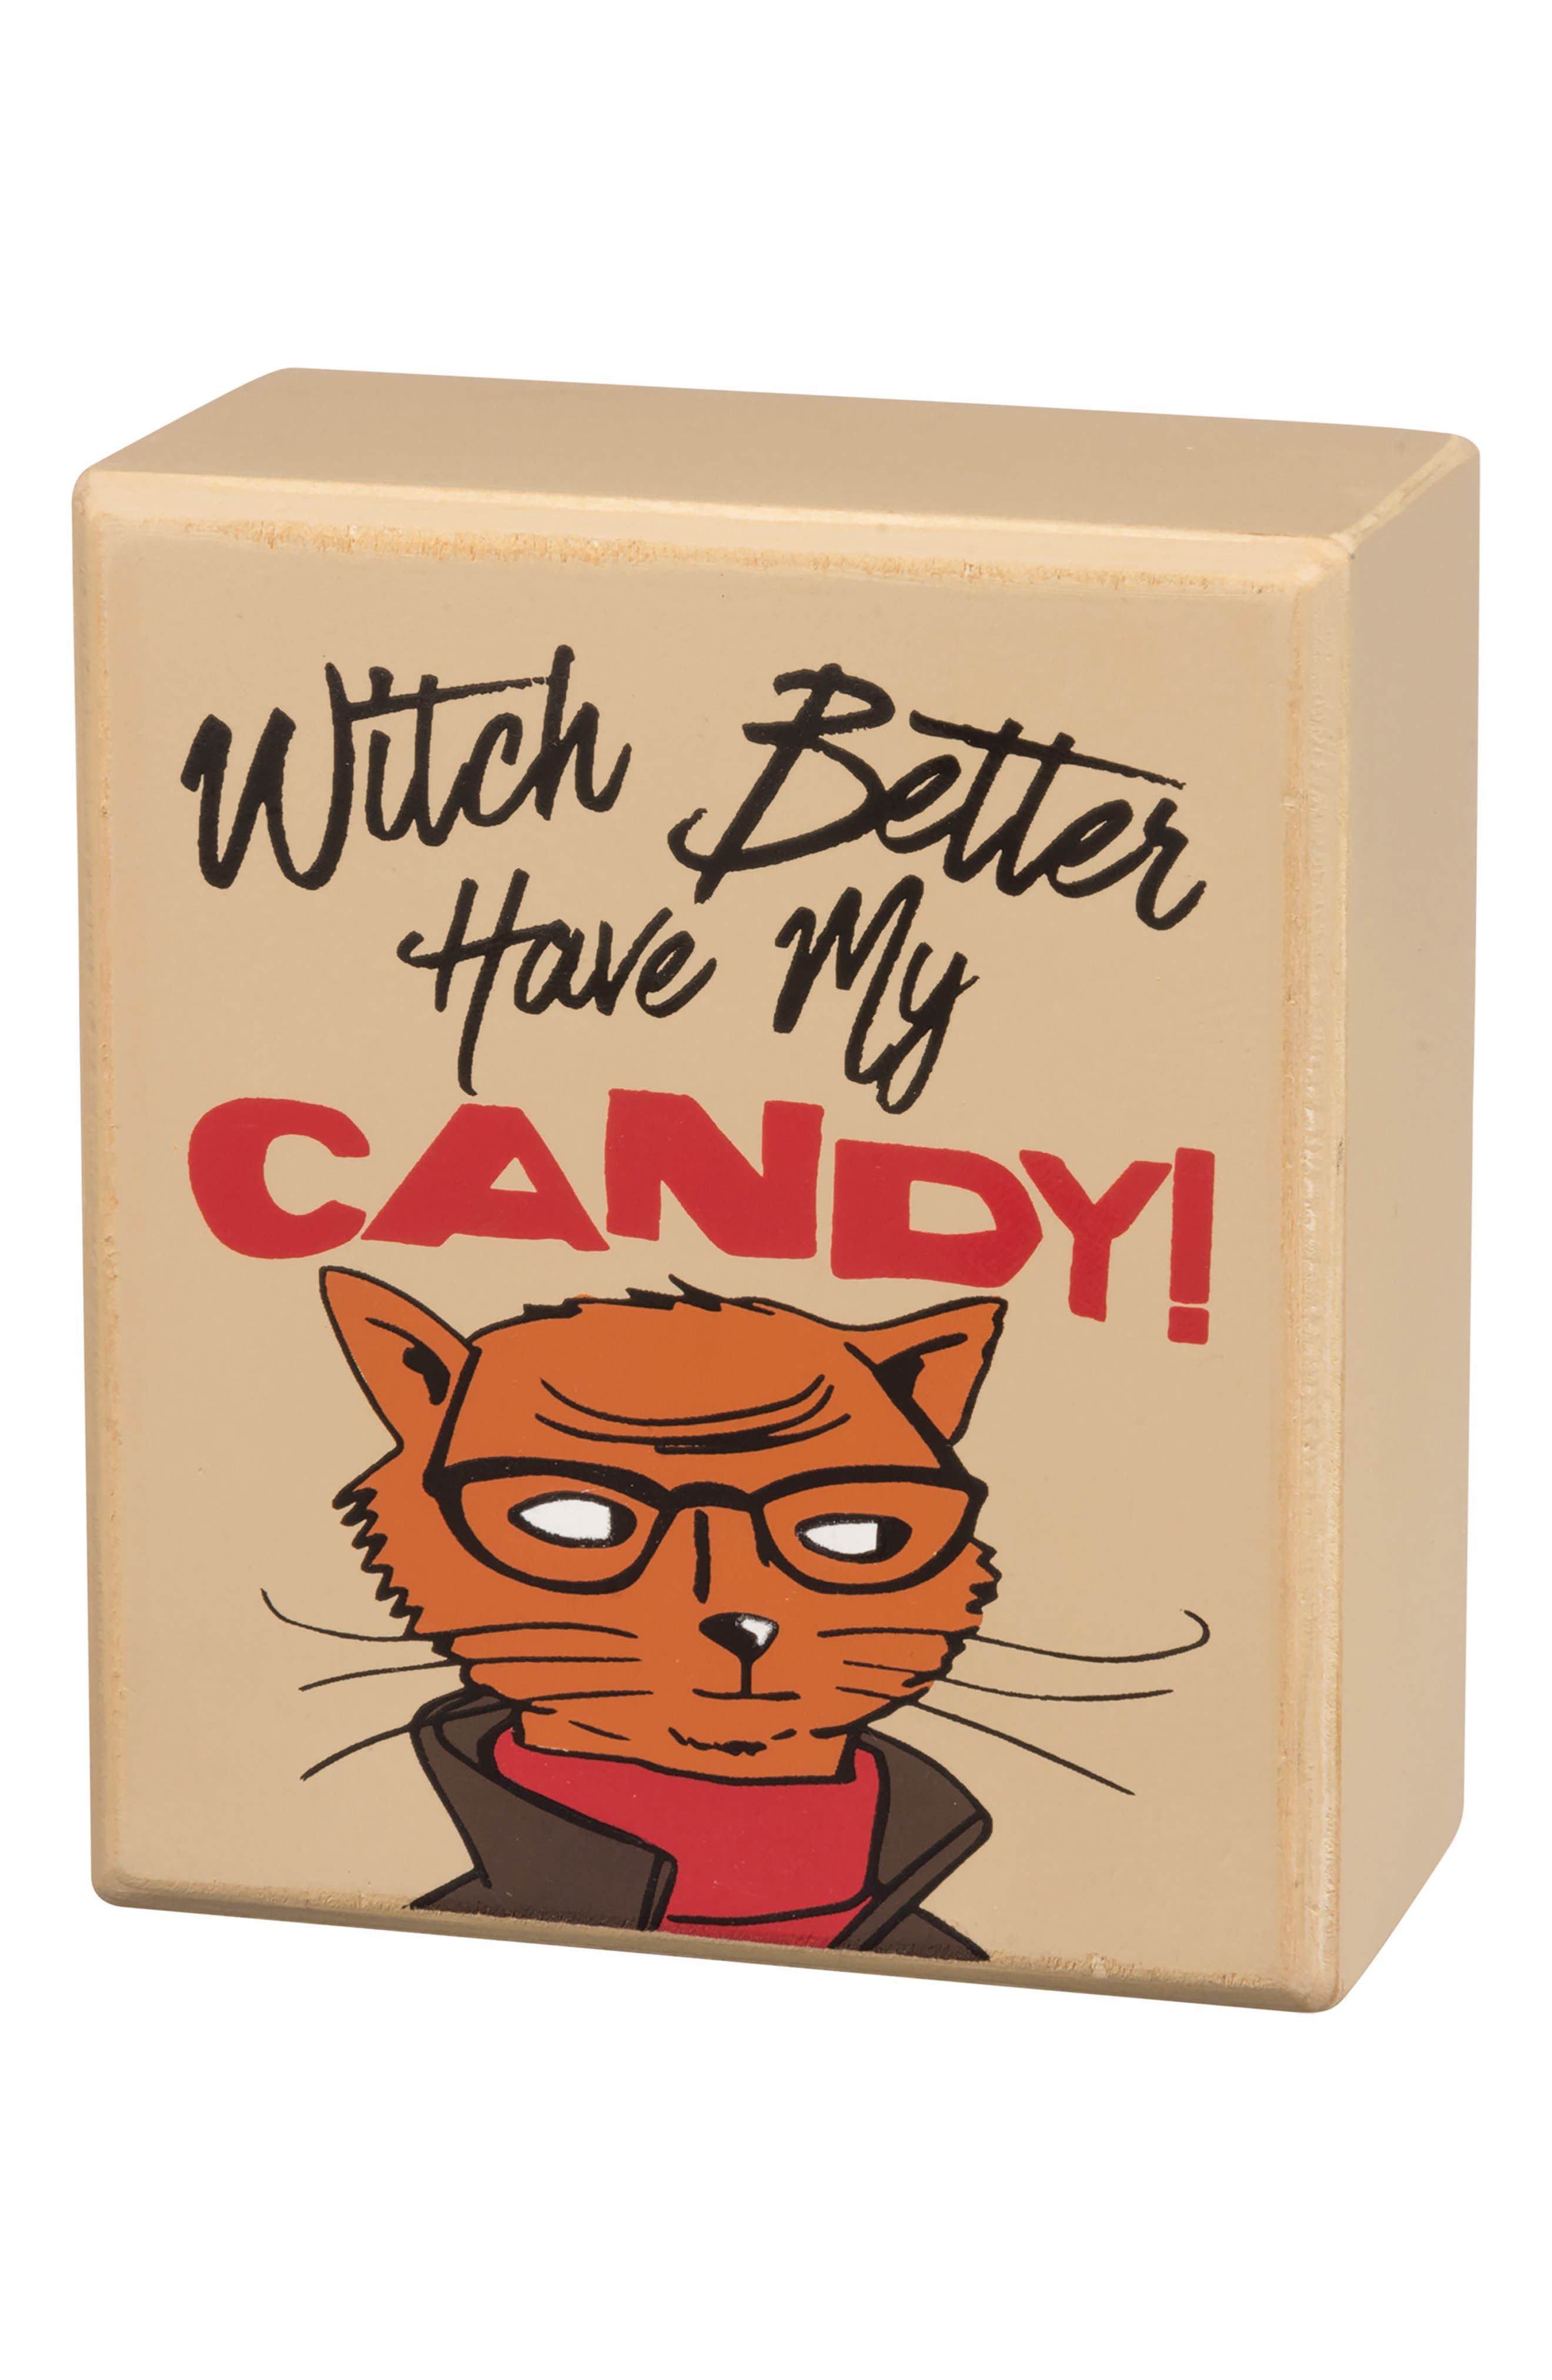 Primitives by Kathy Witch Better Have My Candy Box Sign